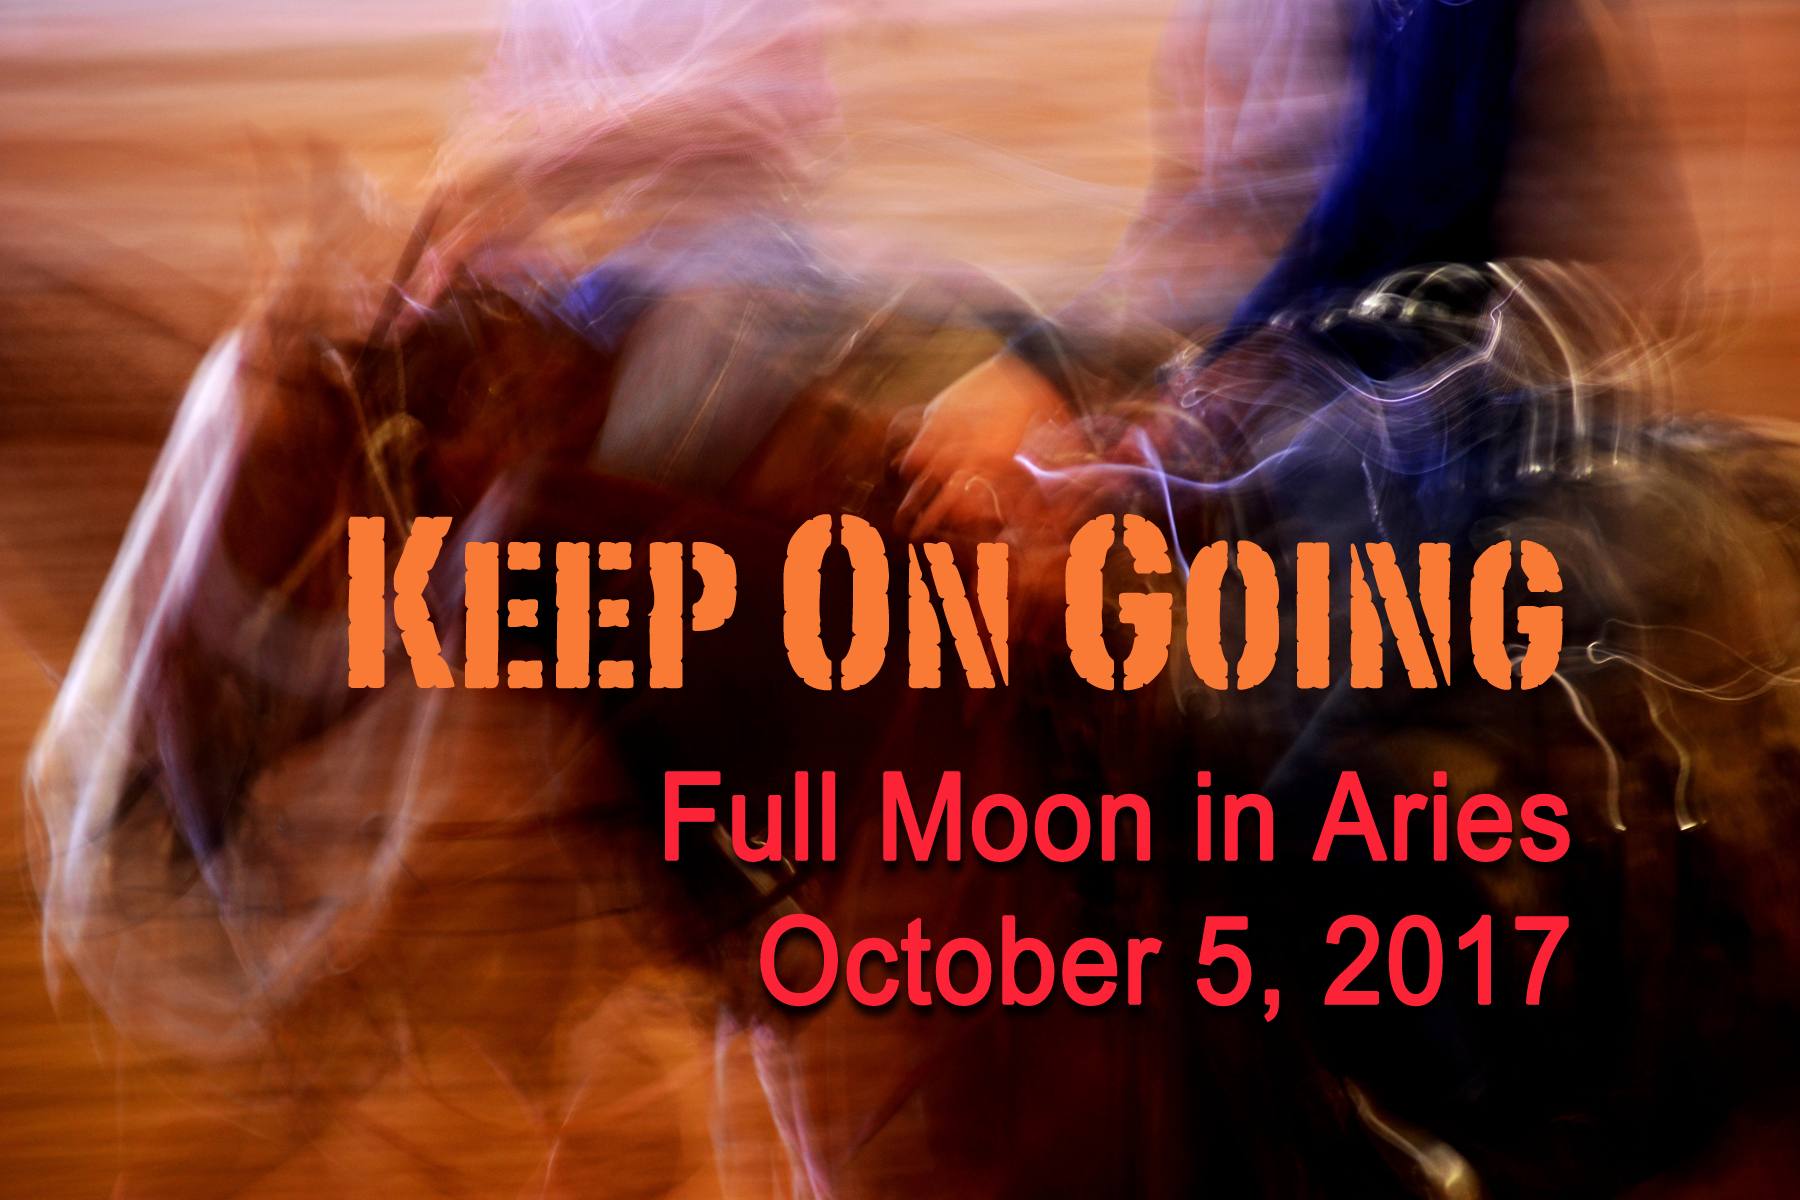 Full Moon in Aries: Keeping On Going